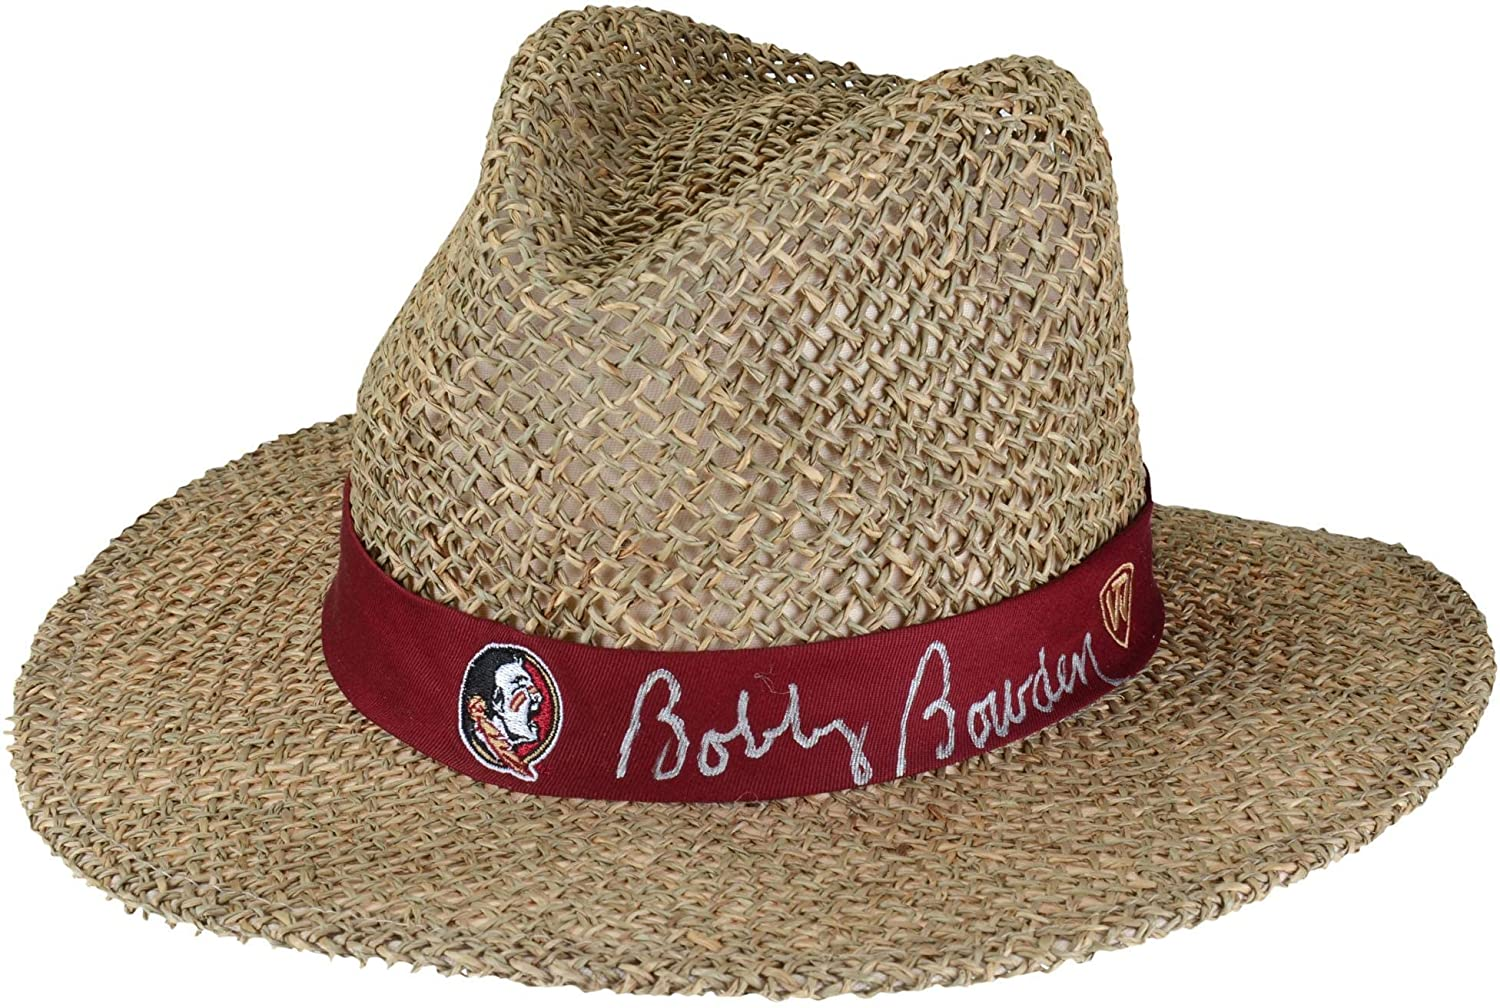 Bobby Bowden Florida State Seminoles Autographed Straw Hat - Fanatics Authentic Certified - College Autographed Miscellaneous Items